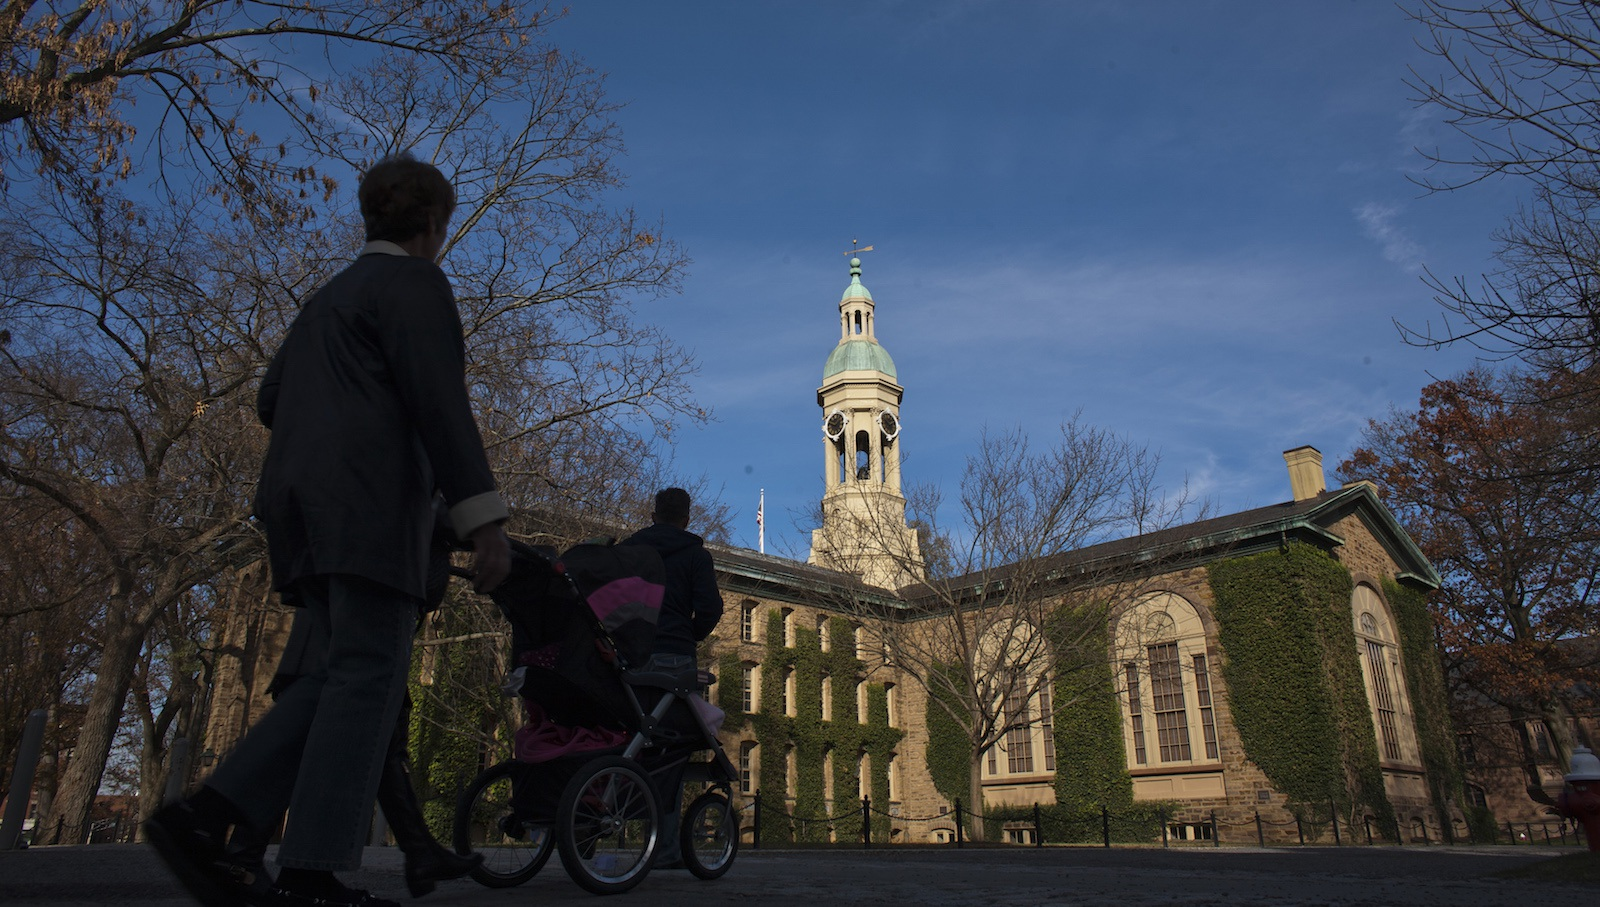 Students walk around the Princeton University campus in New Jersey